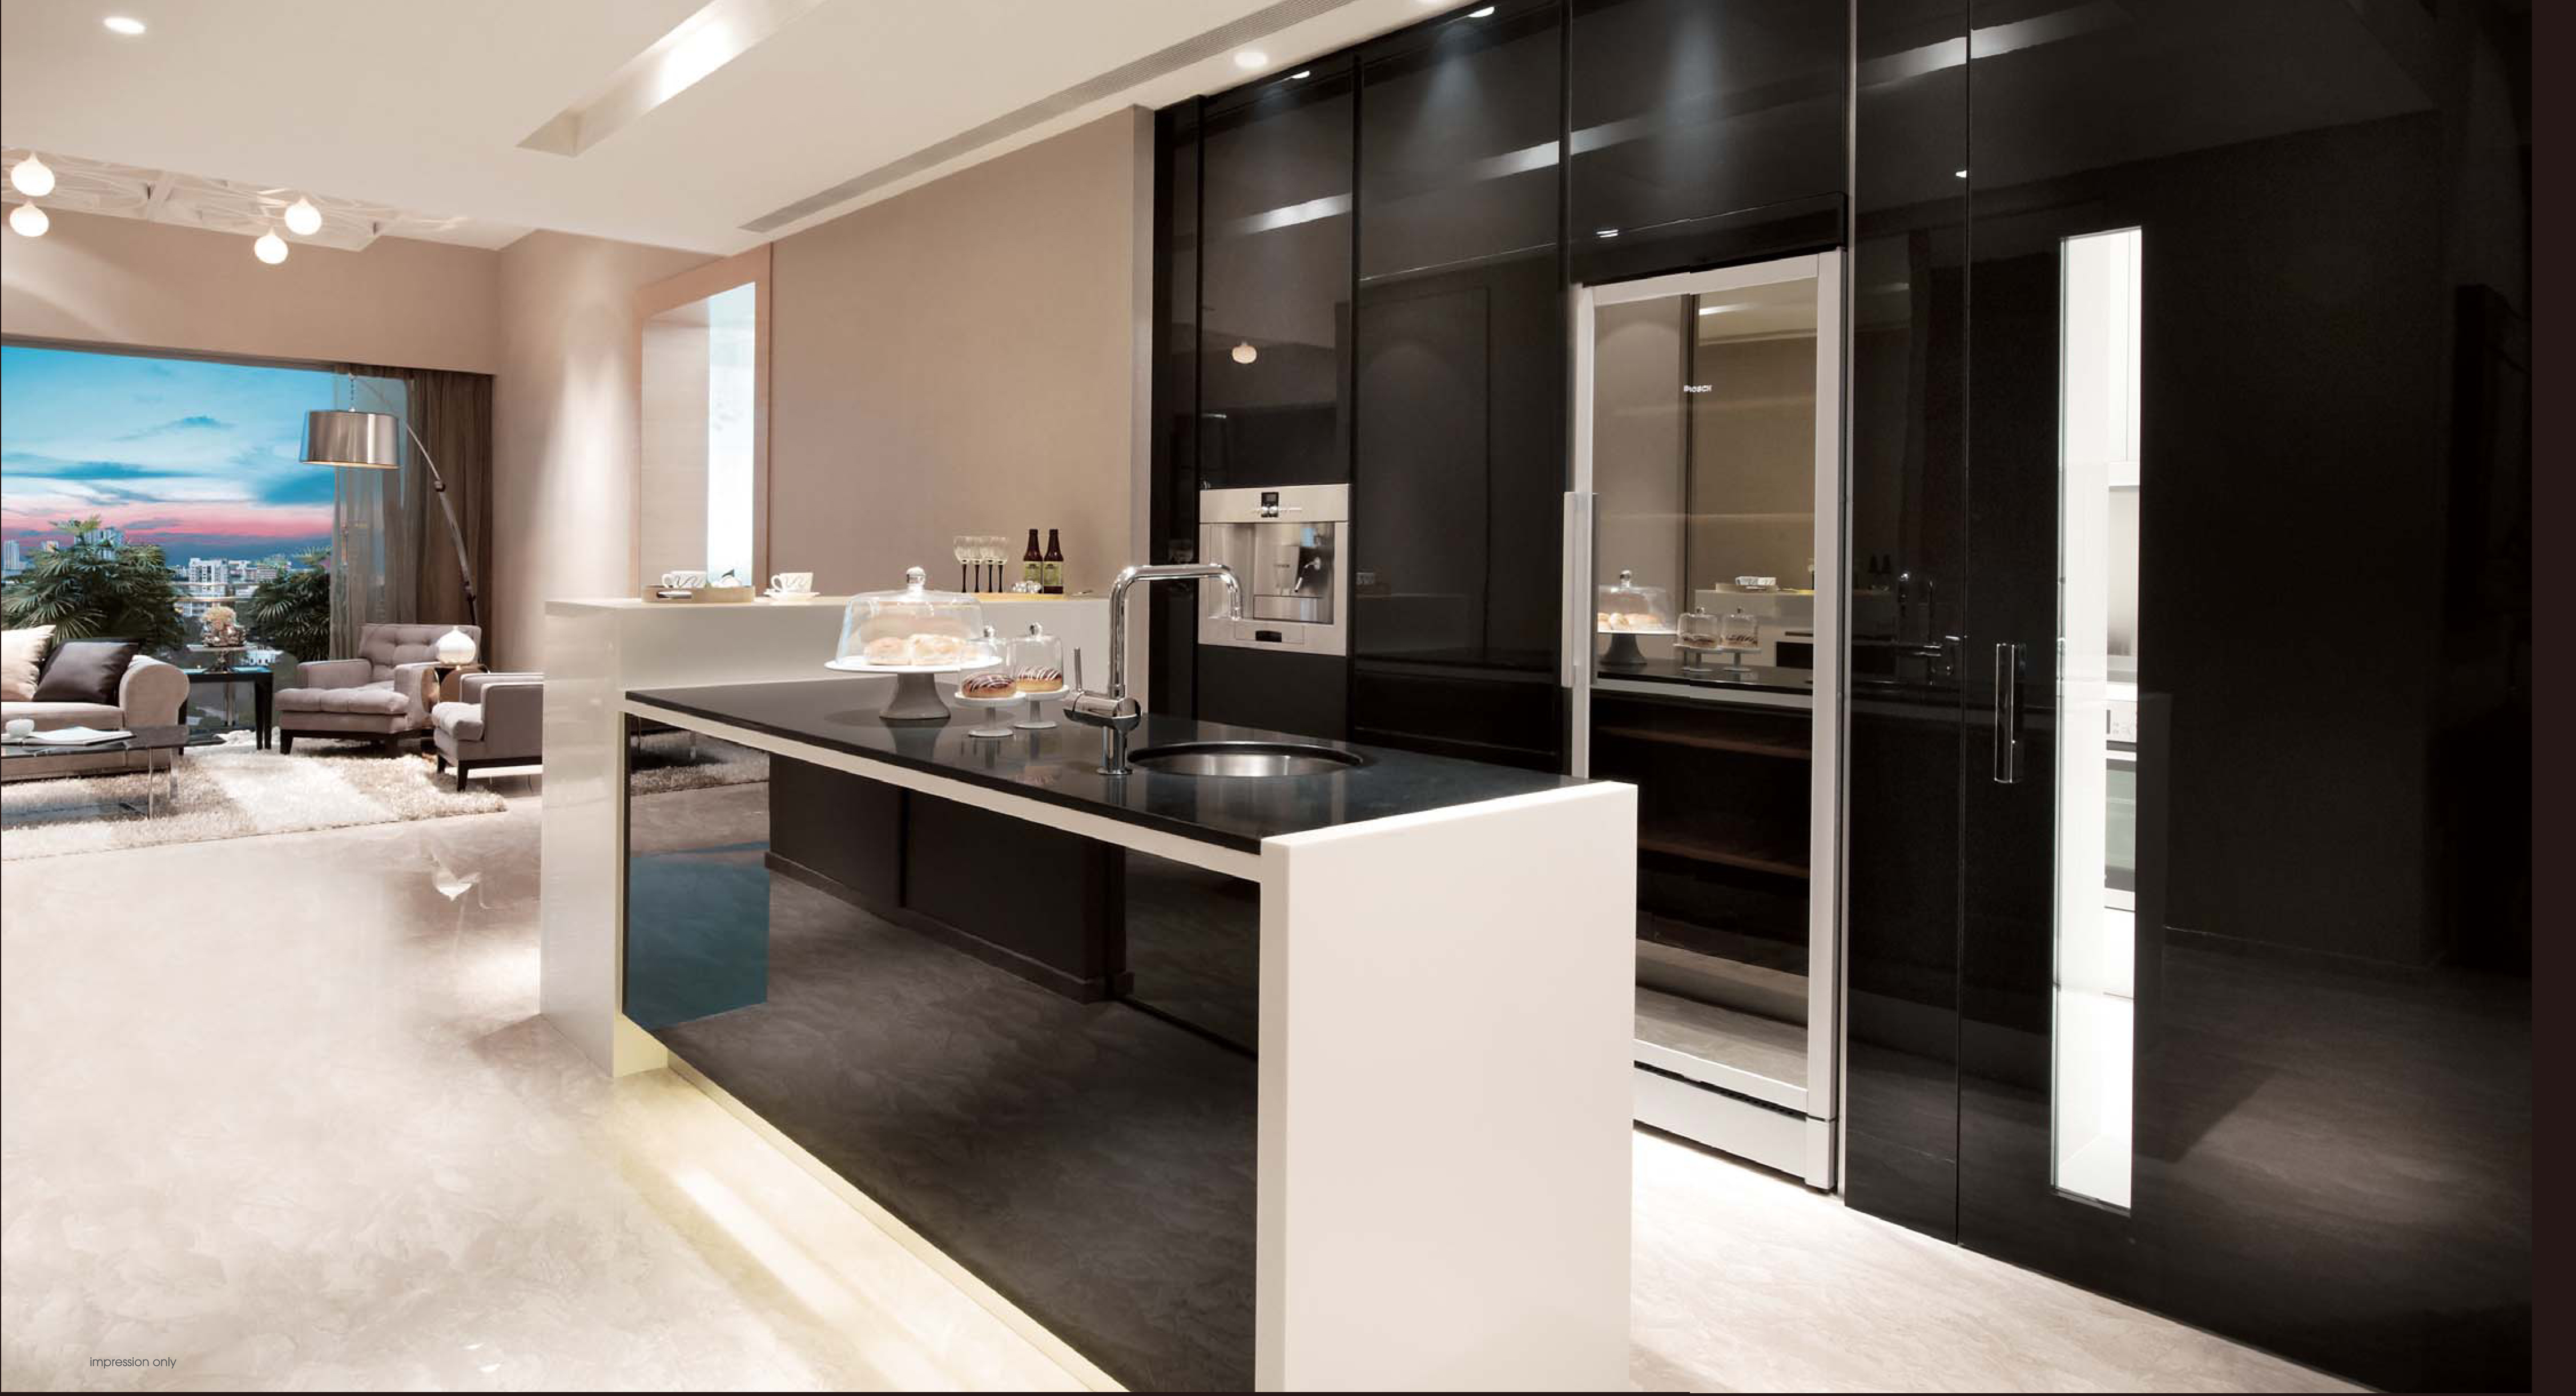 Residences at Killiney-kitchen.jpg